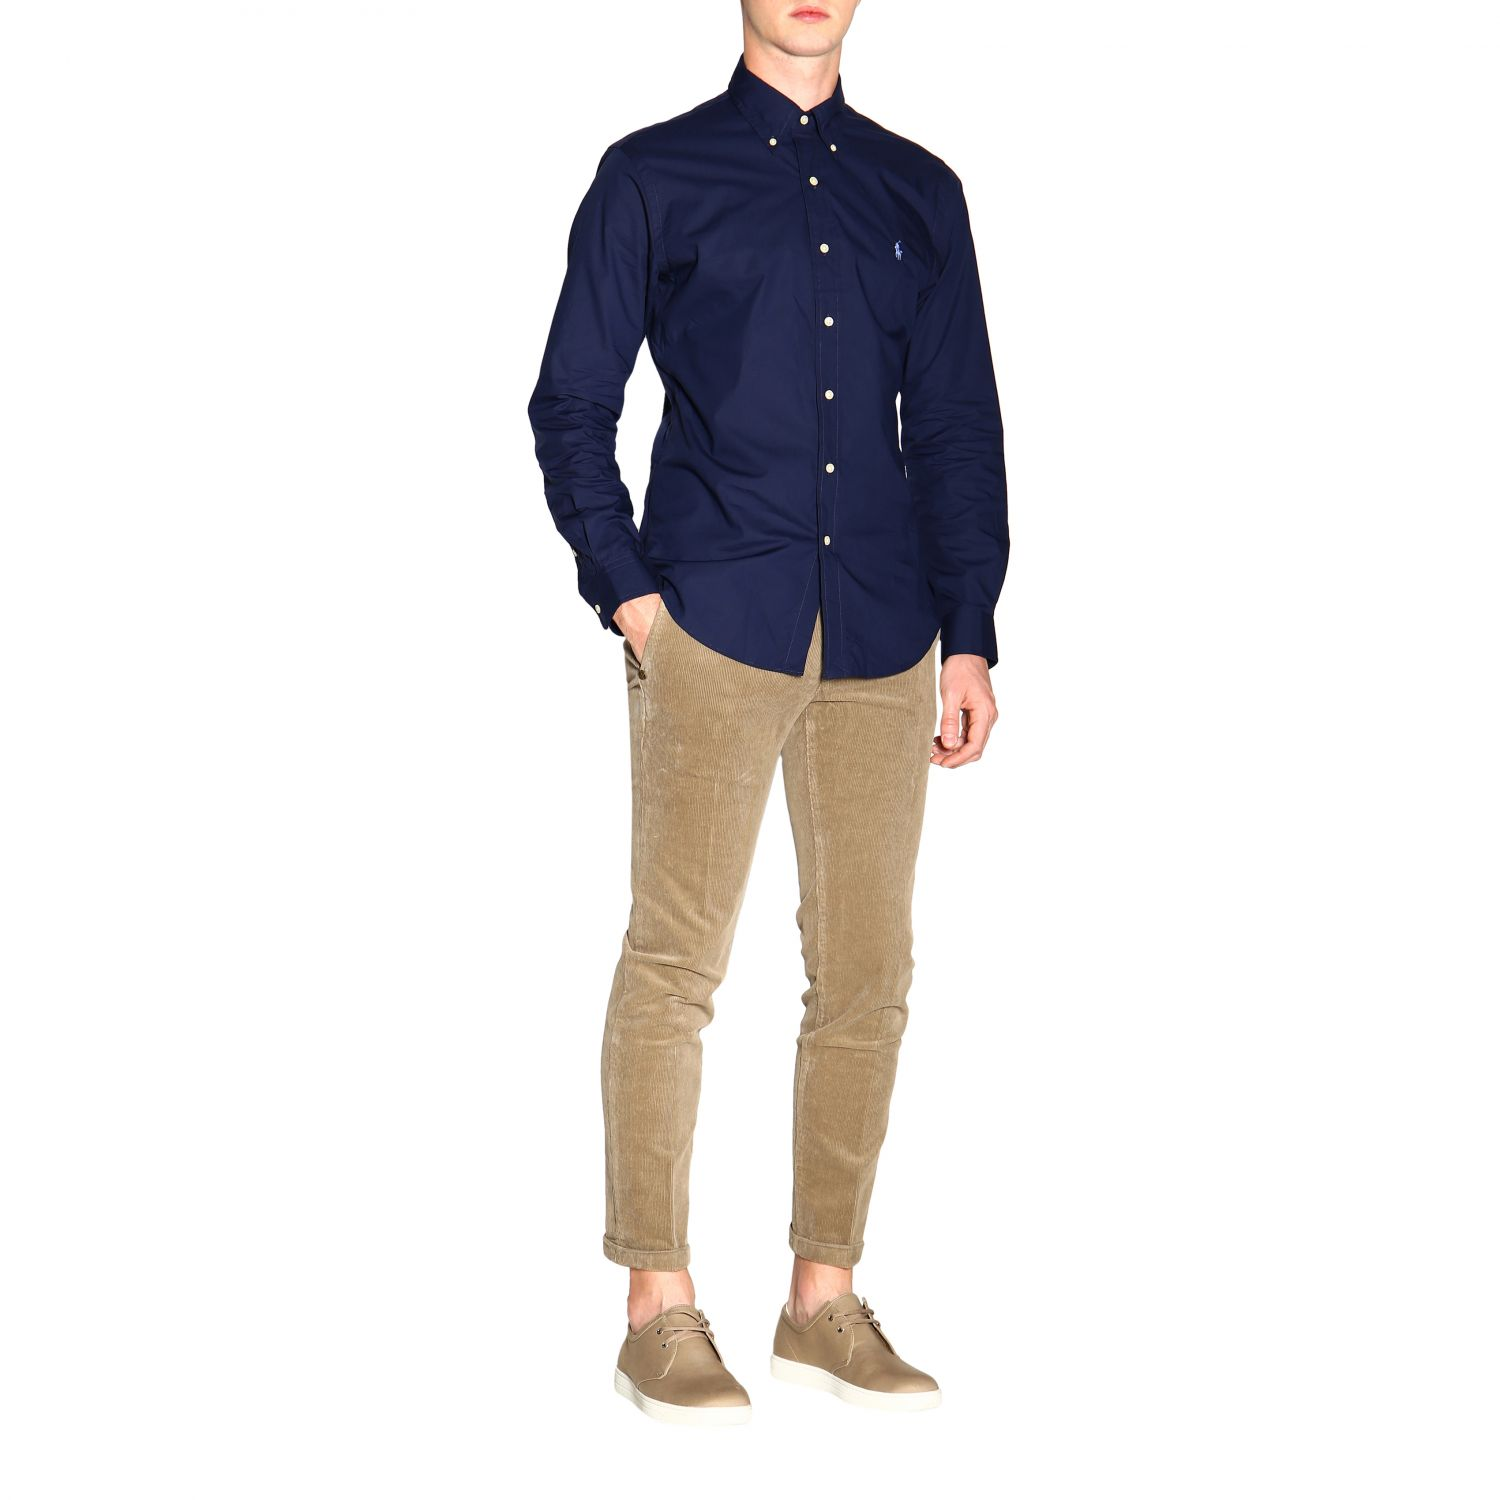 Natural stretch custom fit shirt with button down collar and Polo Ralph Lauren logo blue 2